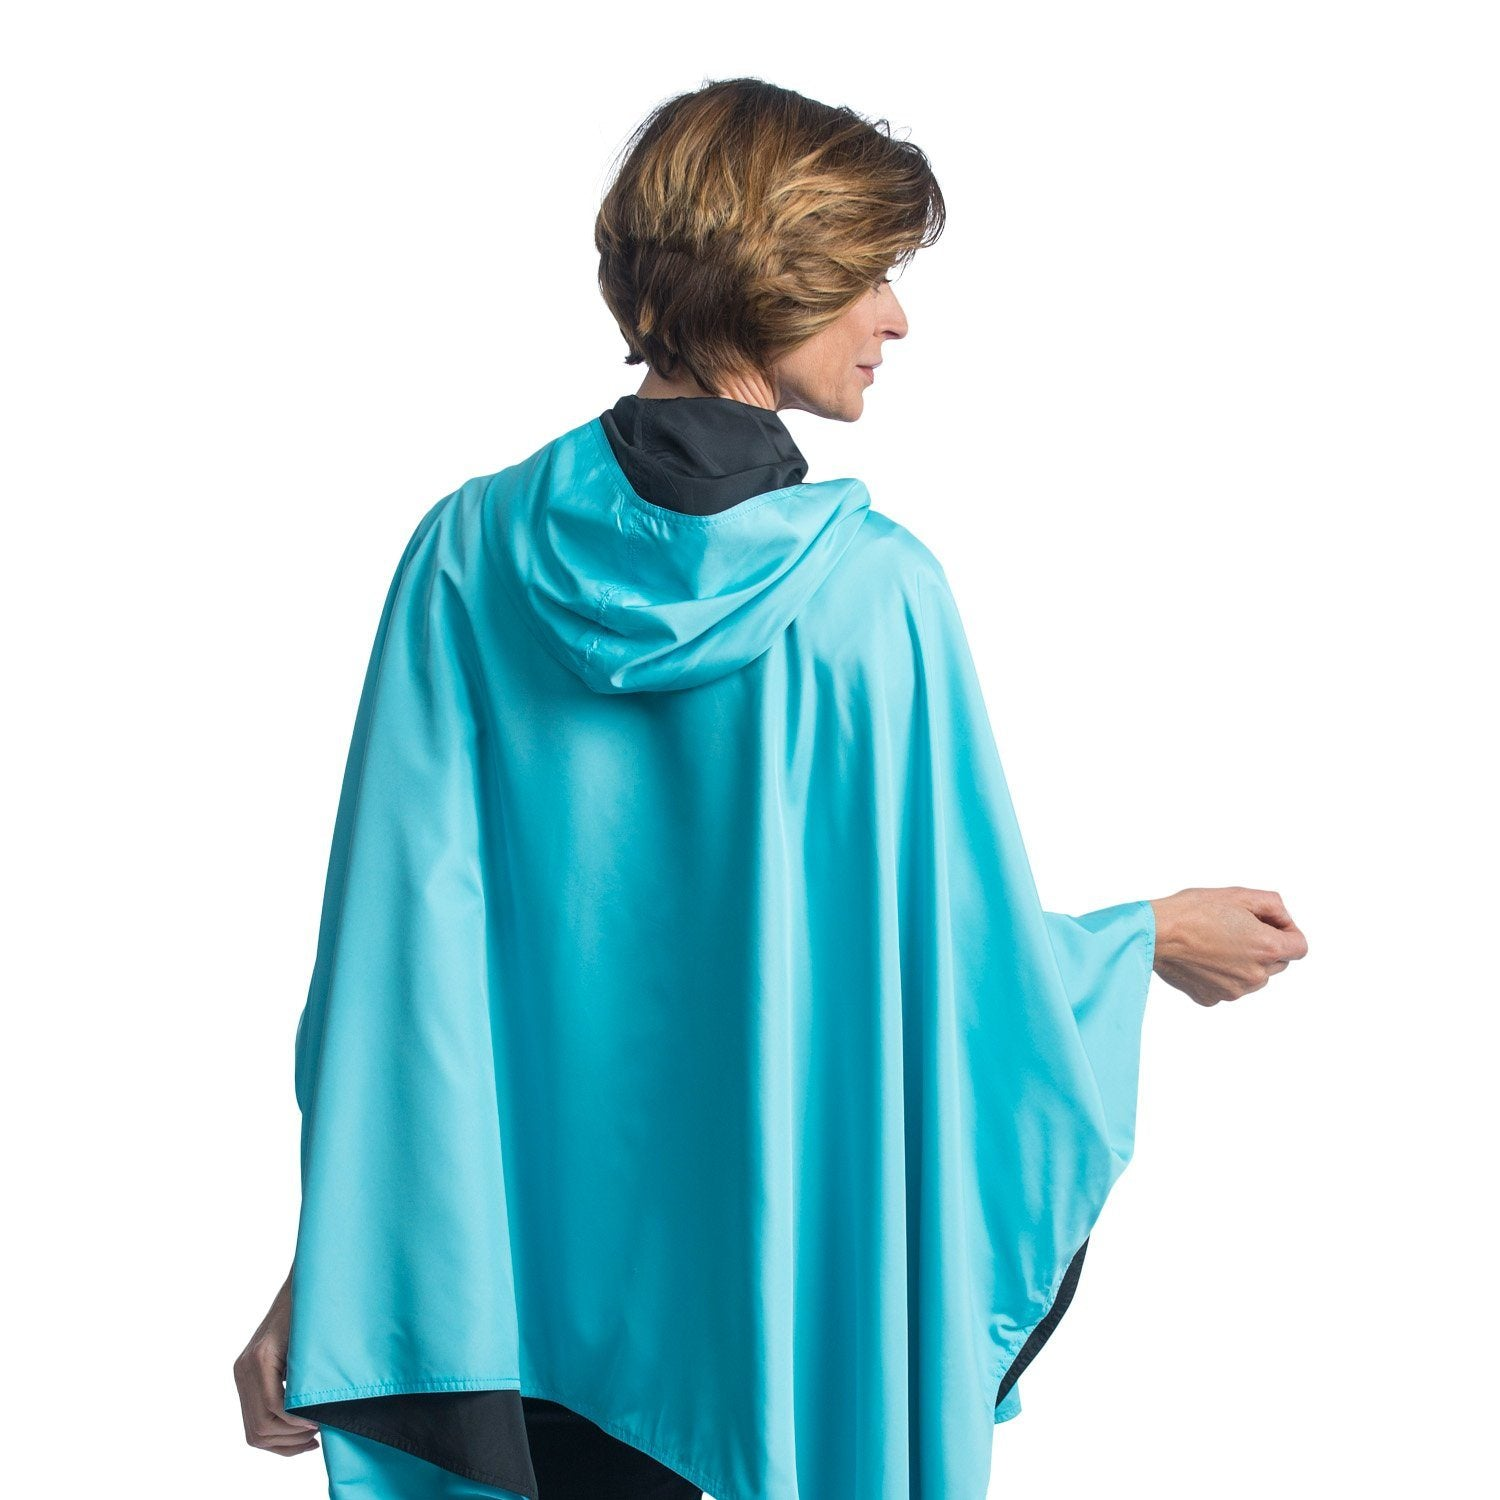 Women wearing a Black & Sky Blue RainCaper travel cape with the Black side out, revealing the Sky Blue print at the lapels and cuffs.